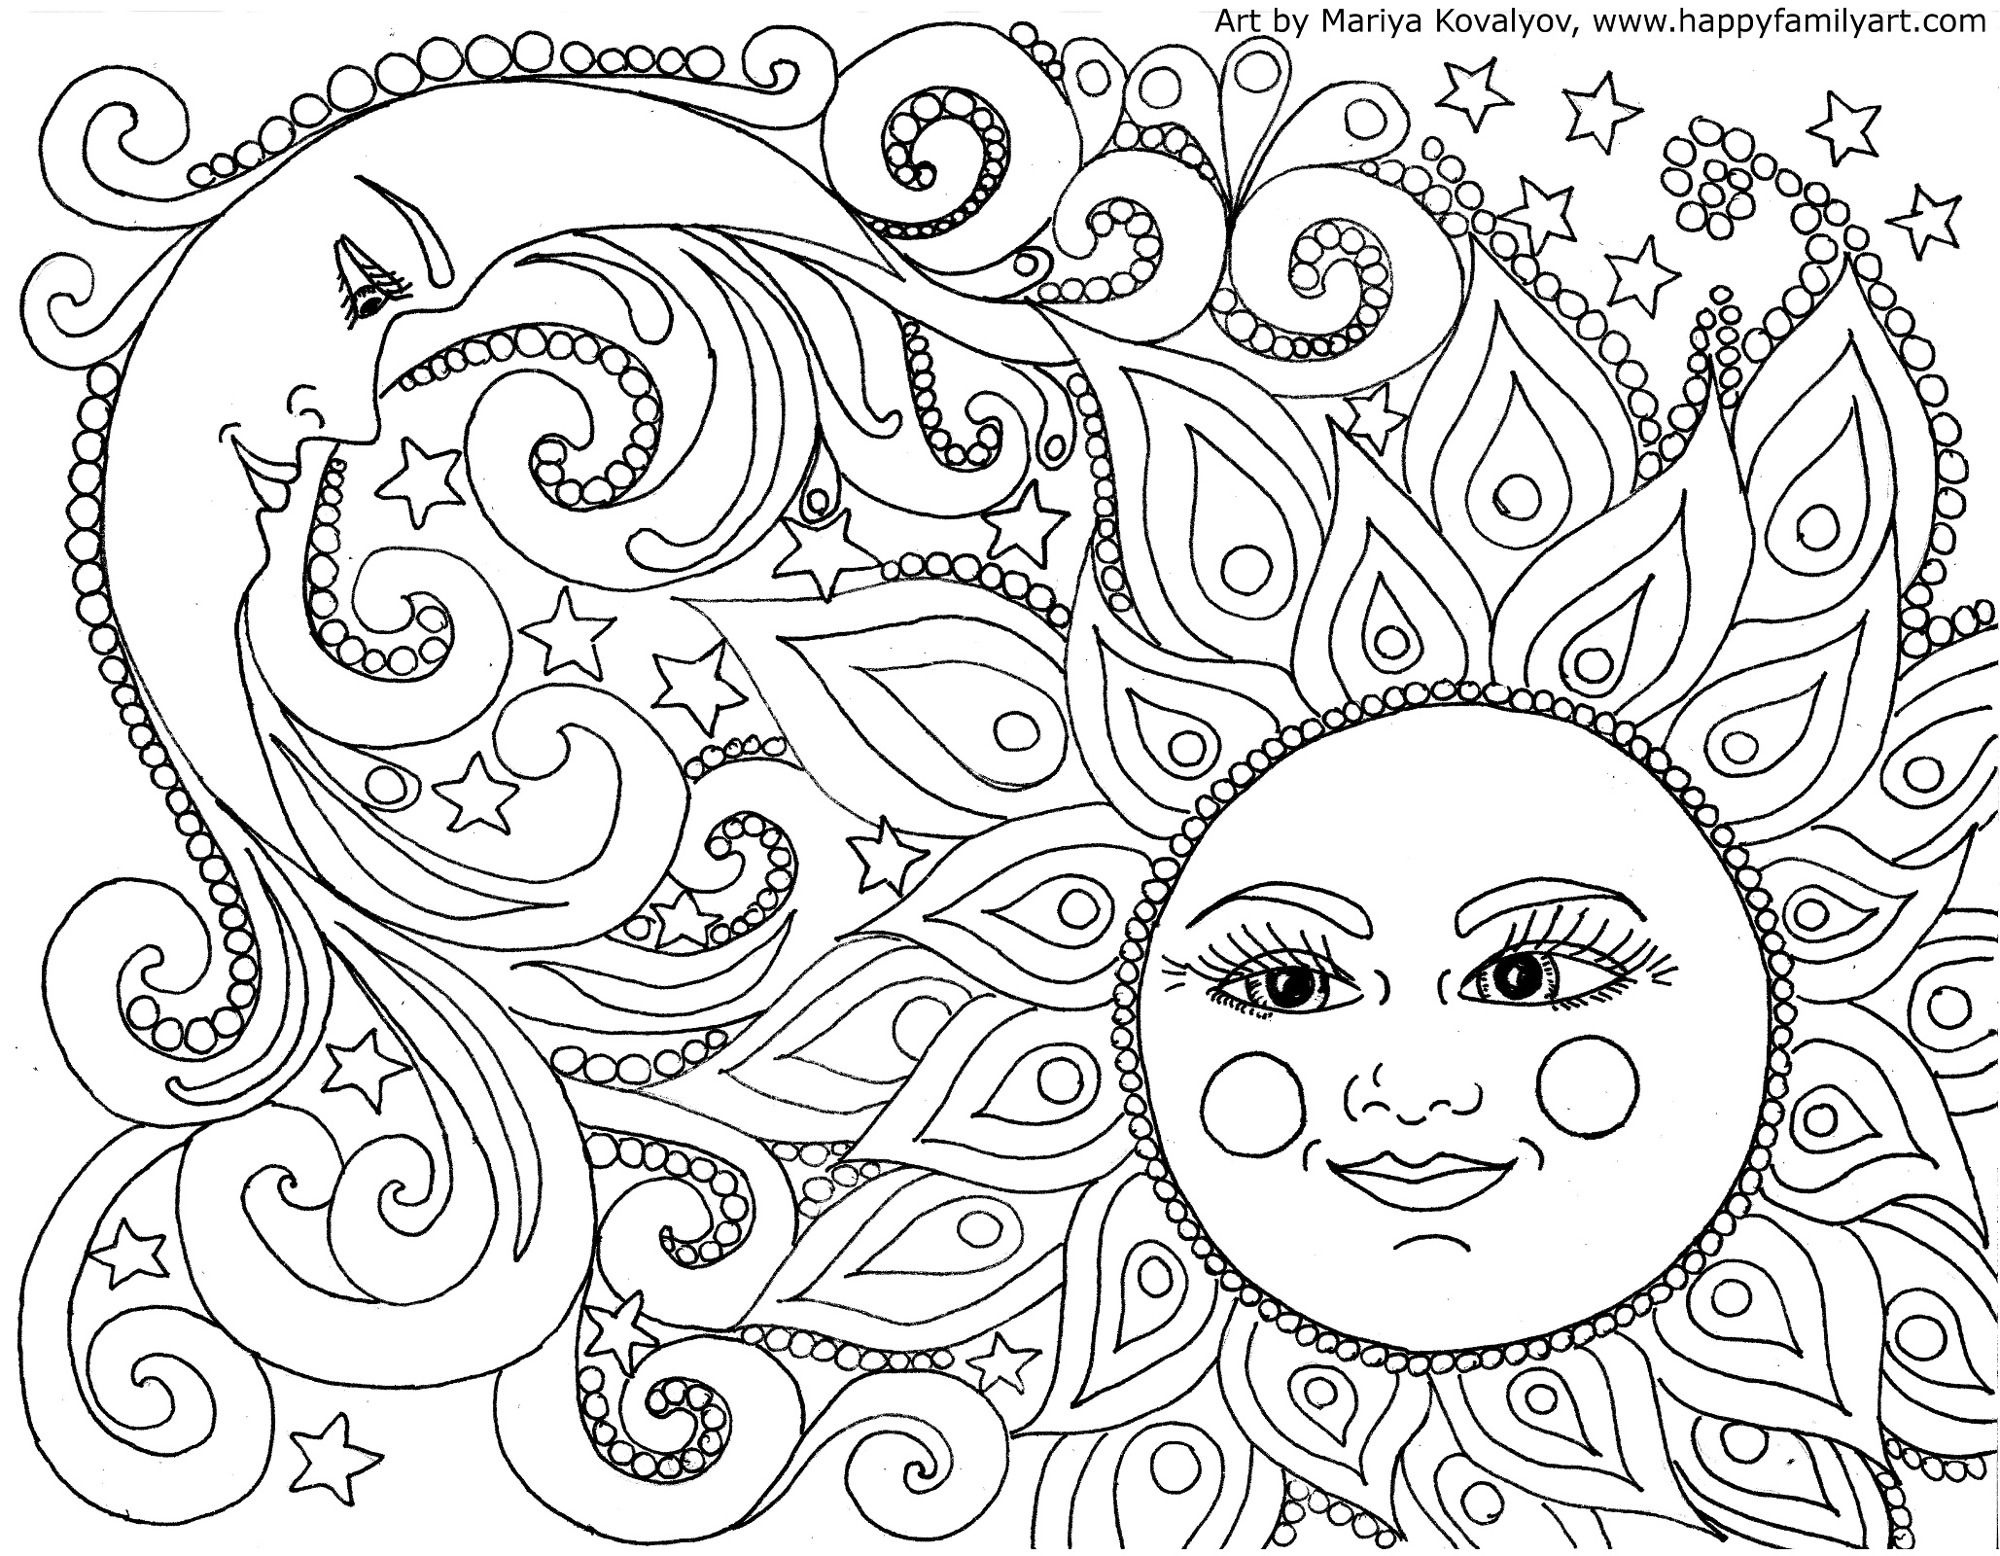 2000x1556 Elegant I Made Many Great Fun And Original Coloring Pages Color